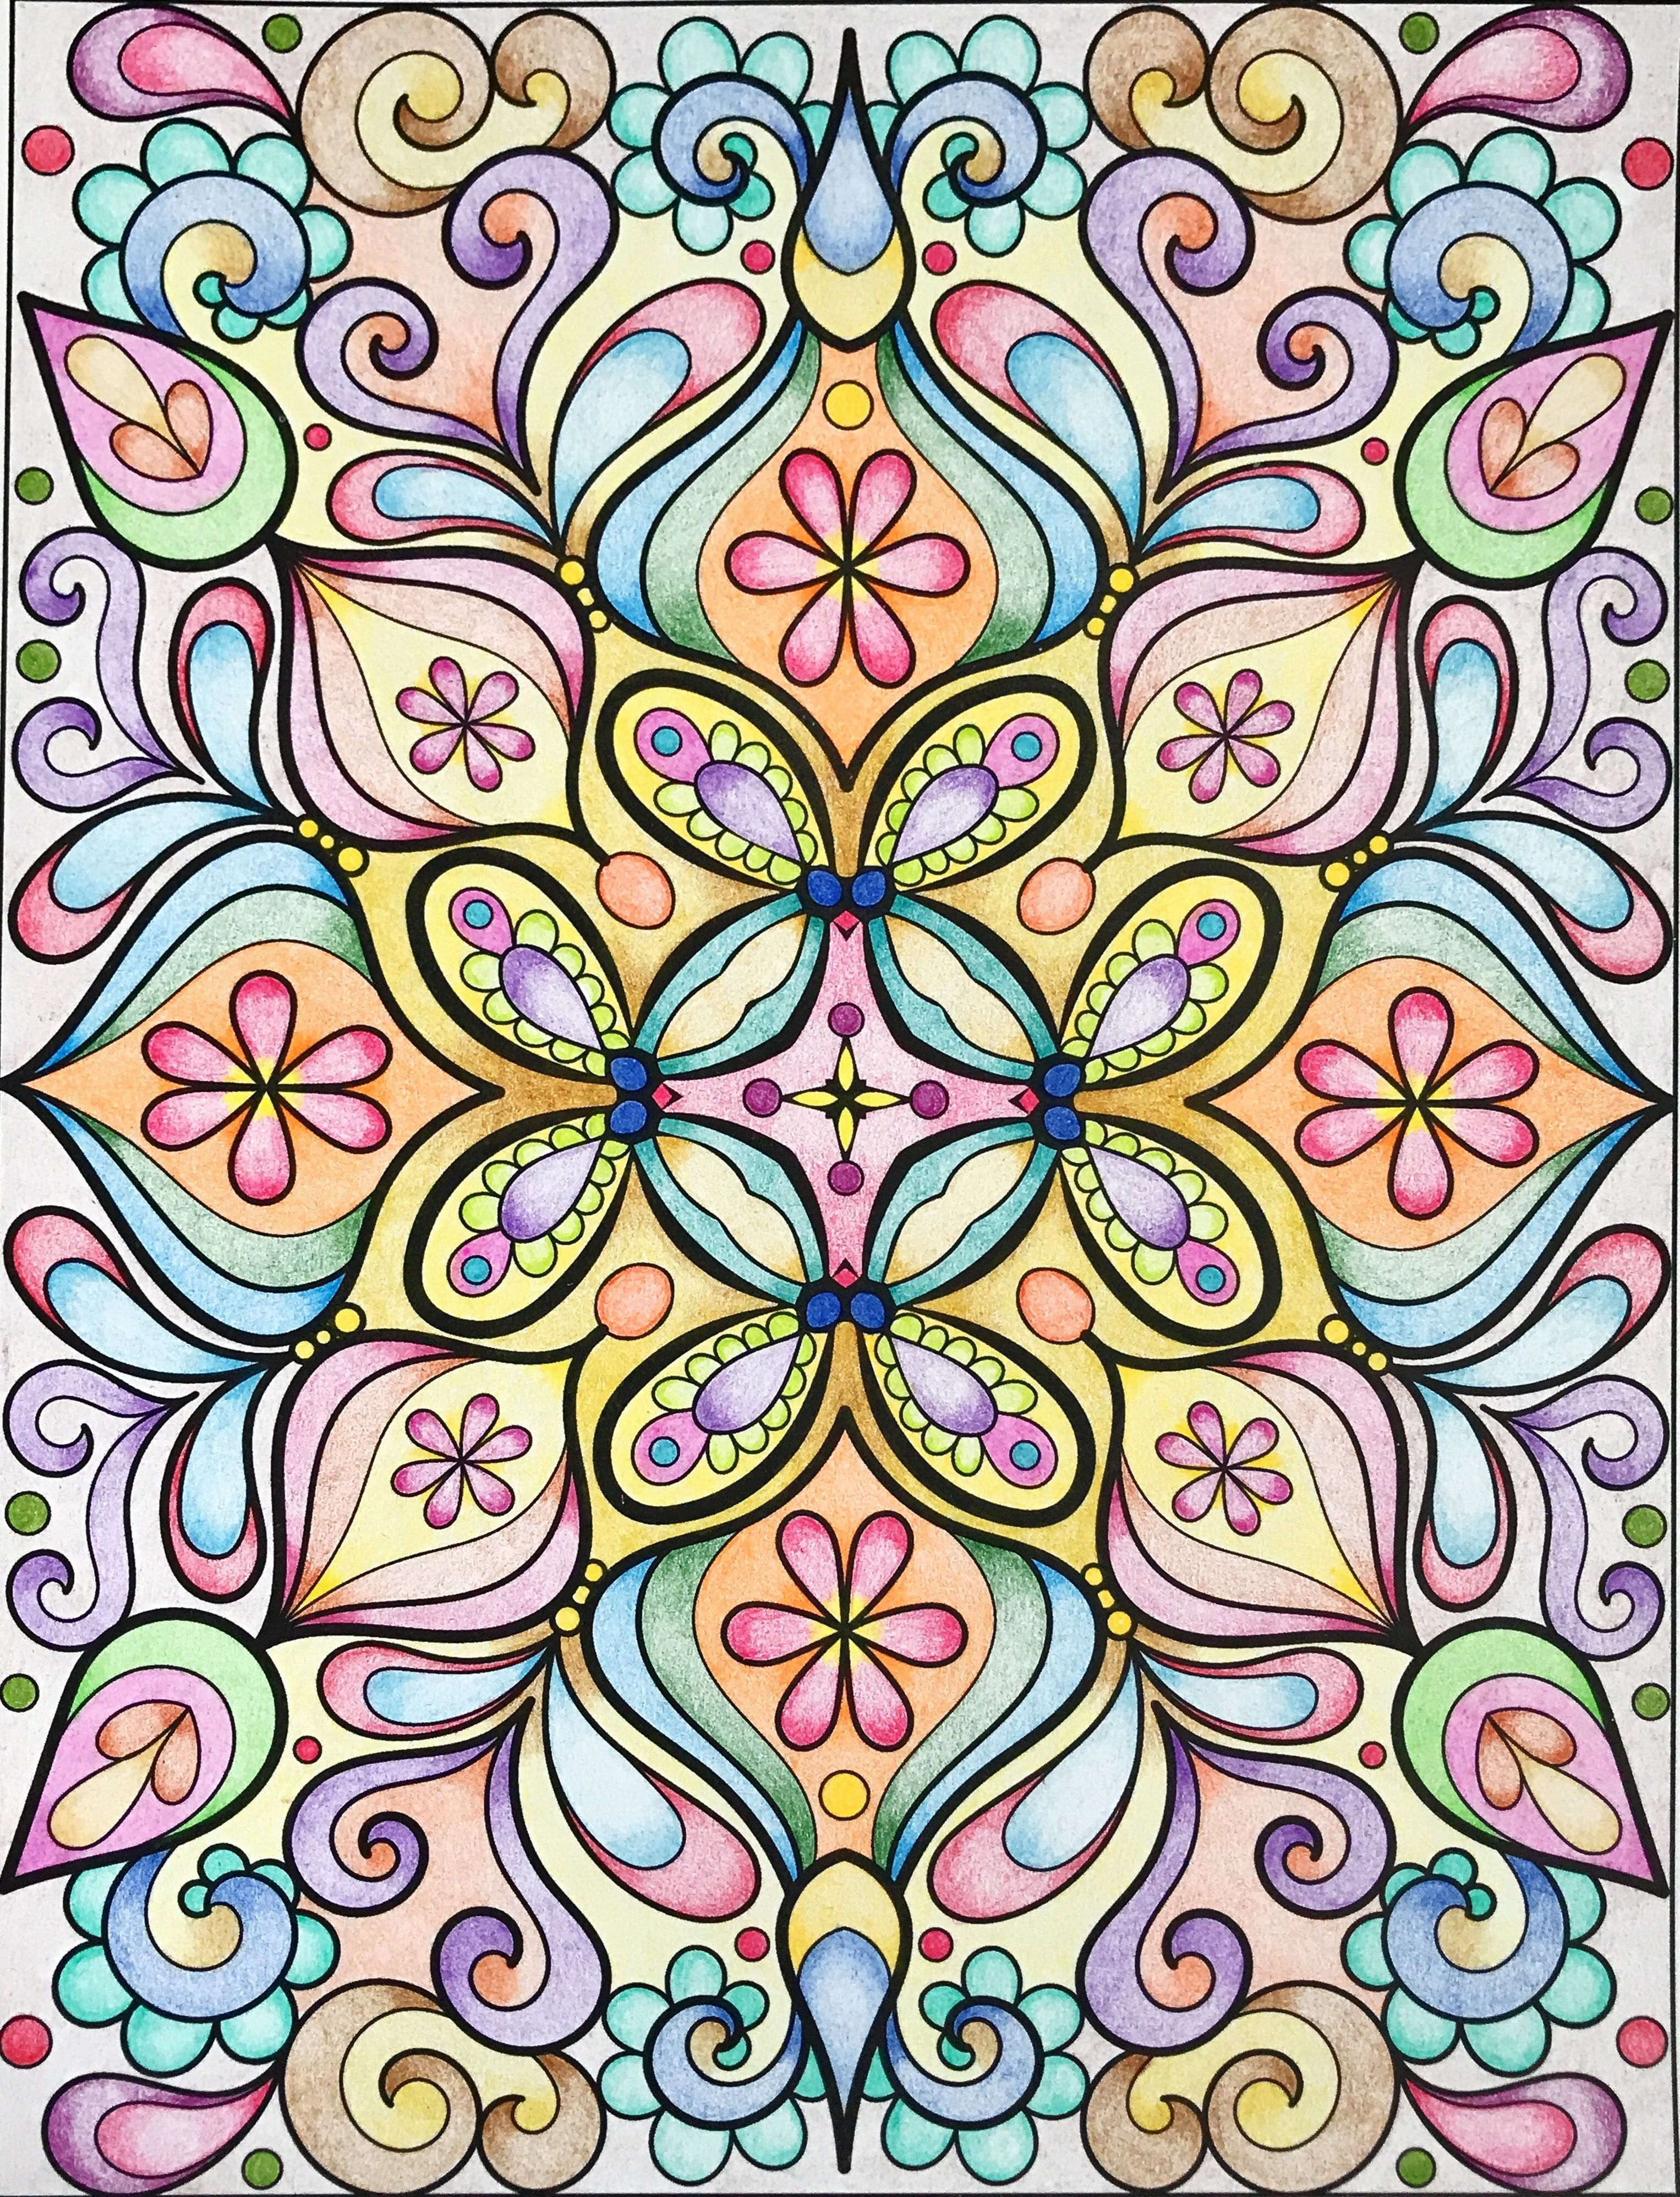 Groovy Abstract Coloring Pages : Design groovy abstract coloring book t mcardle